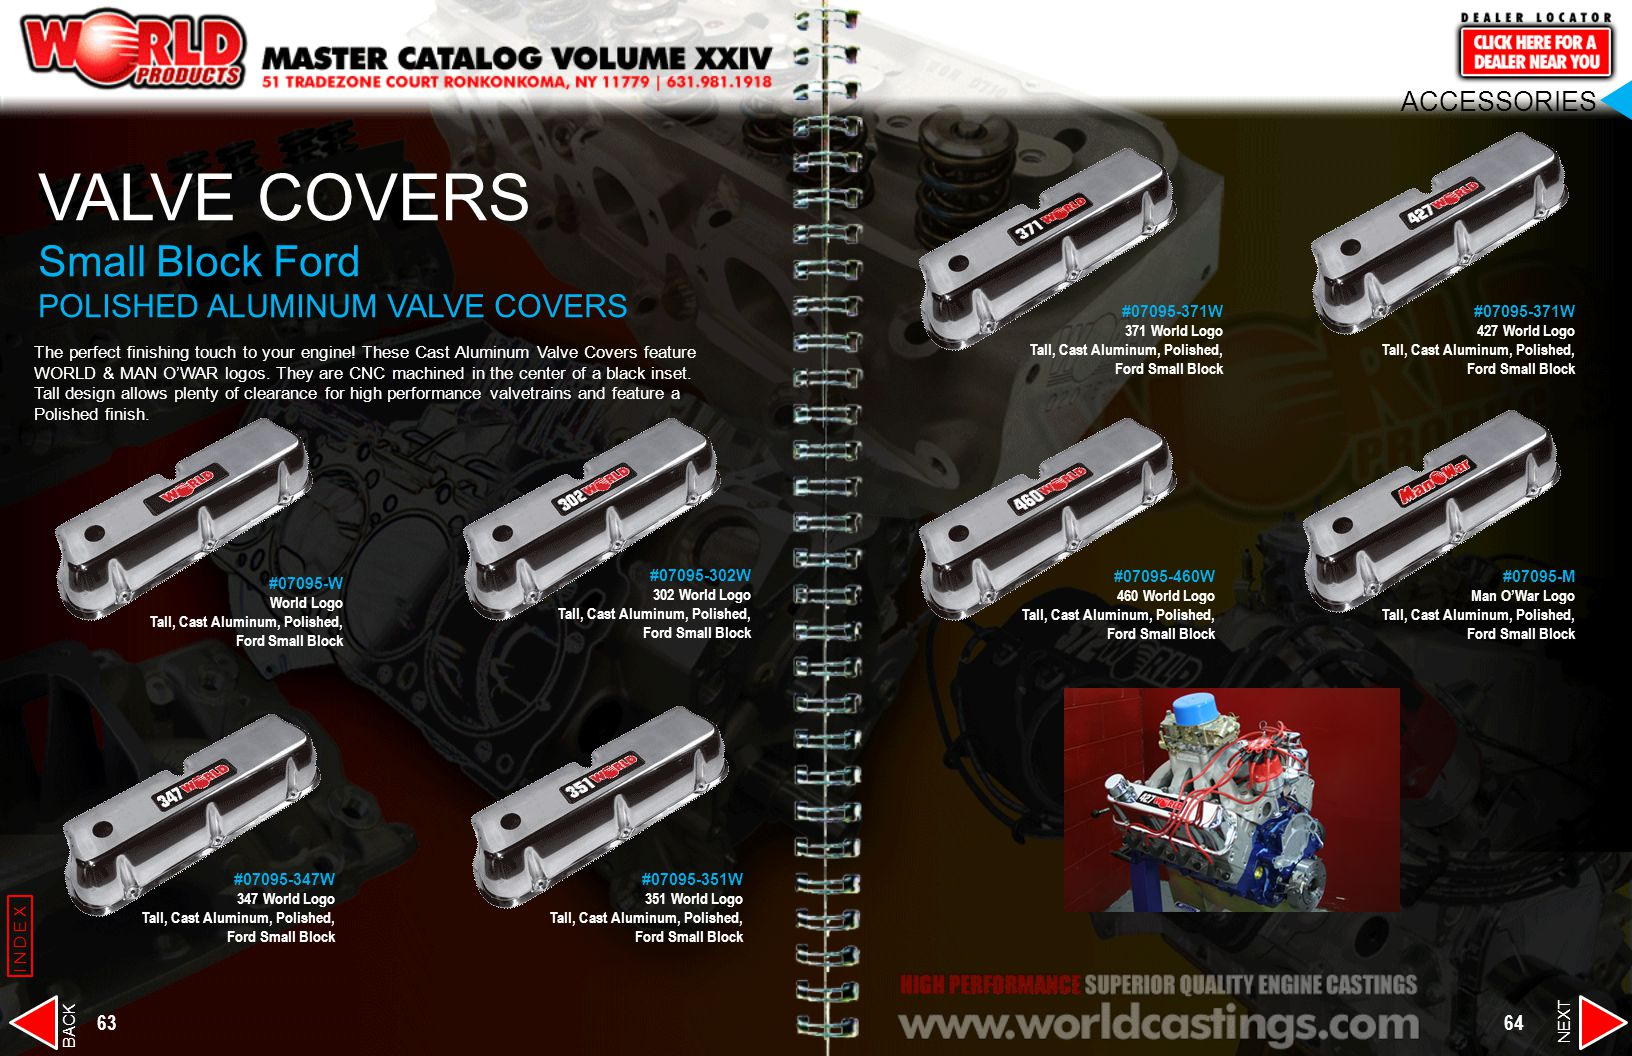 VALVE COVERS Small Block Ford POLISHED ALUMINUM VALVE COVERS